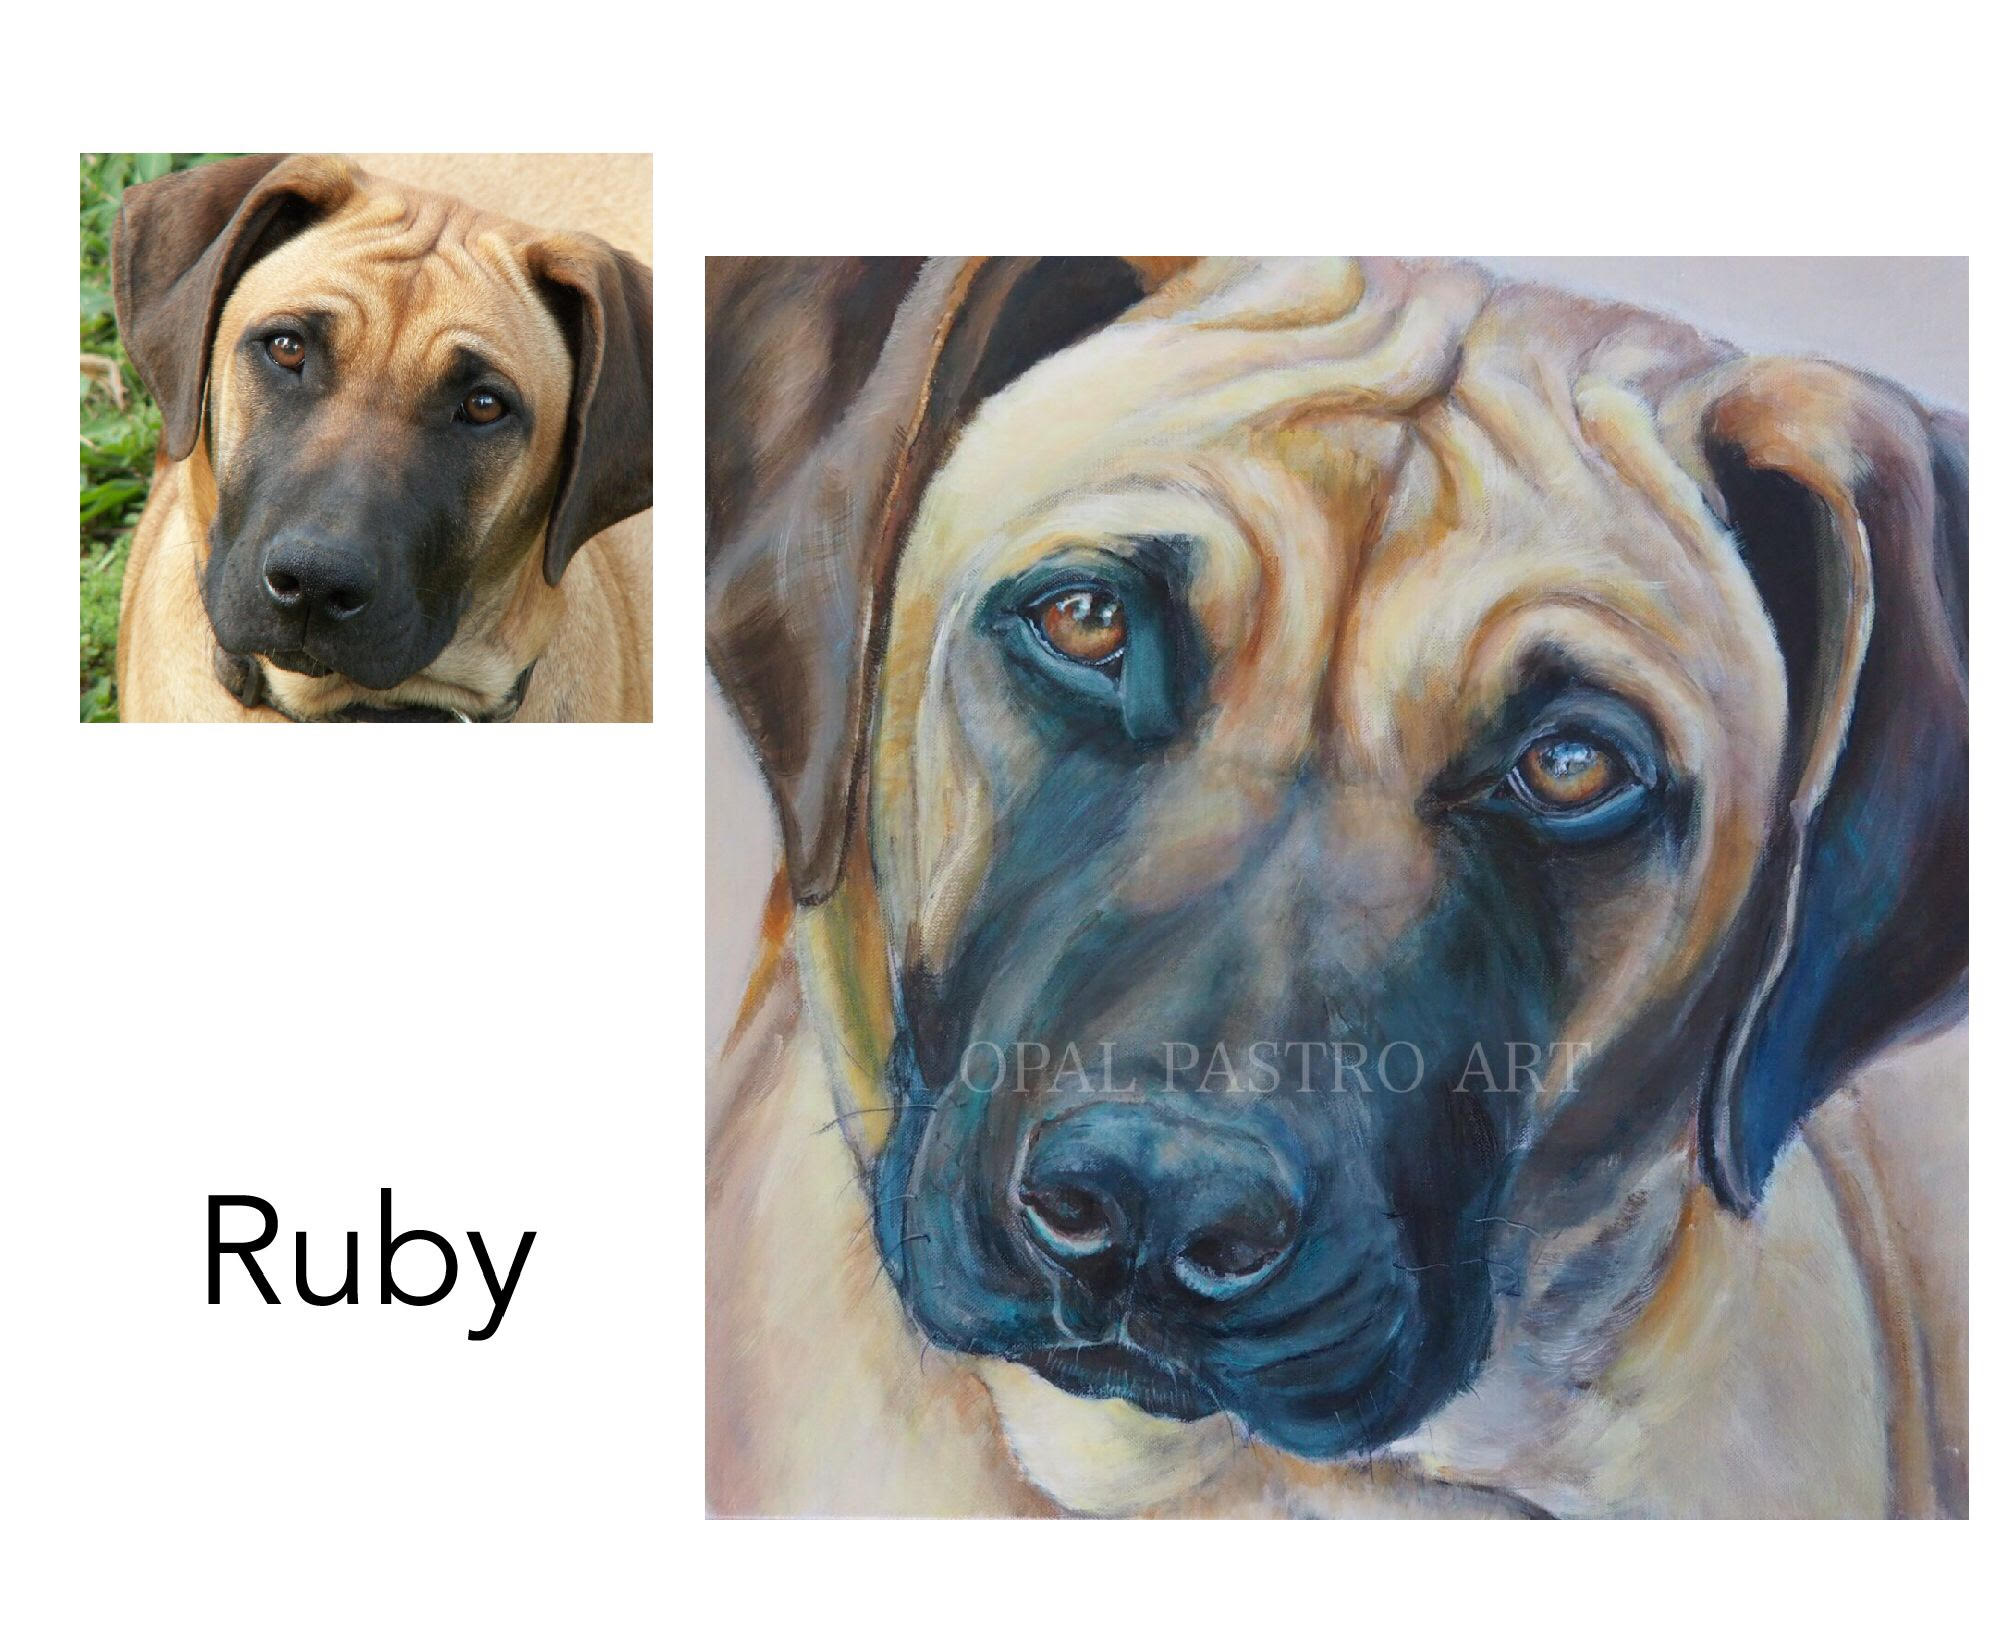 """Rhodesian Ridgeback - Acrylic on canvas 18"""" x 18""""  (50.80cm x 50.80cm)Memorial PortraitBellingen, NSW———————————-Ruby's grieving mum contacted me after losing her beautiful girl from old age. She missed her so much. I felt honored to be asked and really loved painting her beautiful eyes and wrinkles. Ruby is back in her home and her mum's heart each time she looks at Ruby's portrait"""